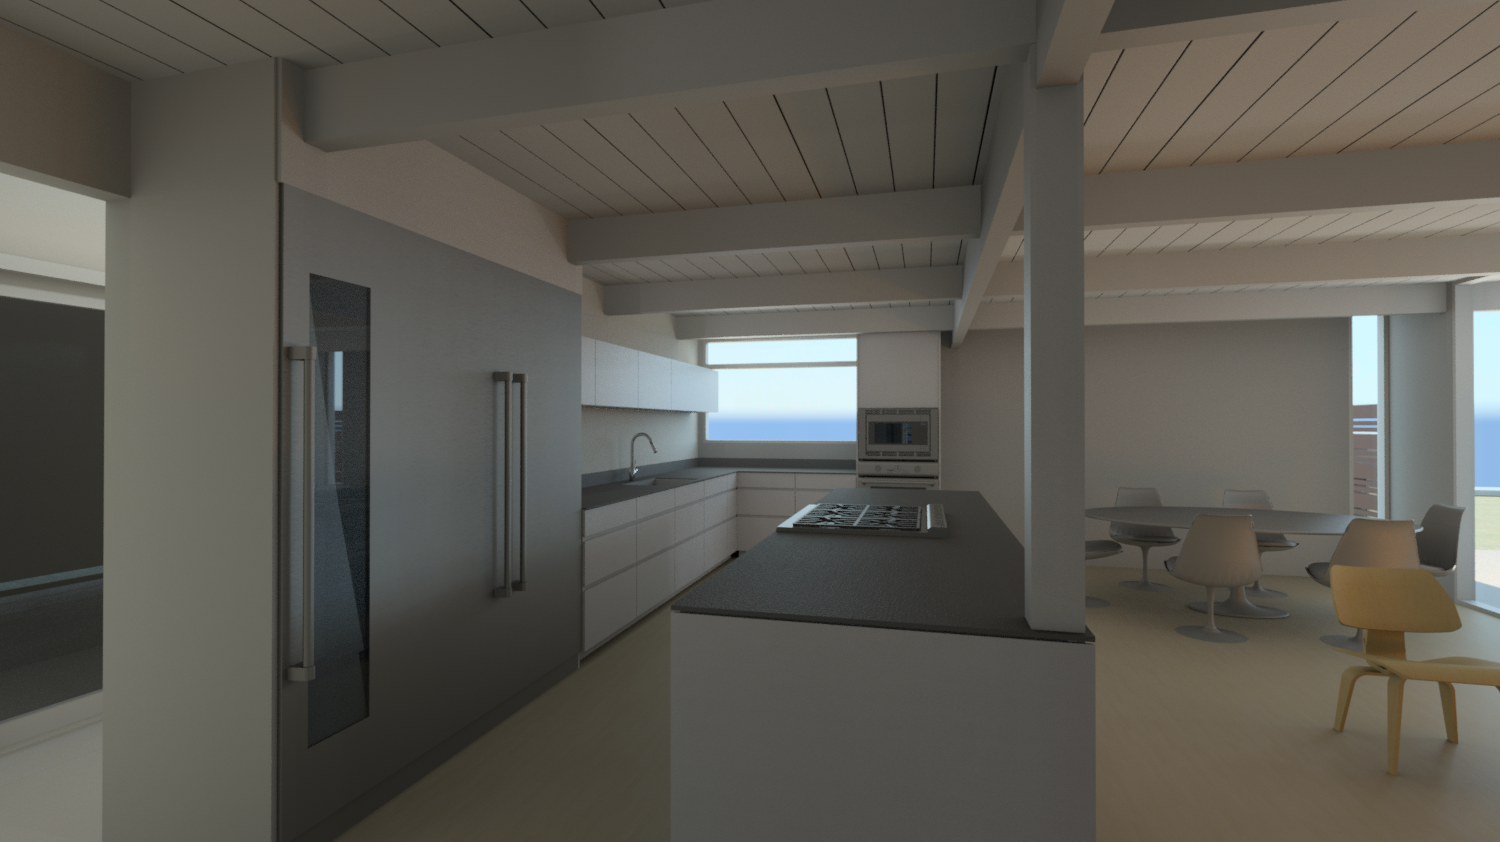 KP-12 _3D_View_-_Kitchen_from_hallway_-_All_Org_Appliances.png